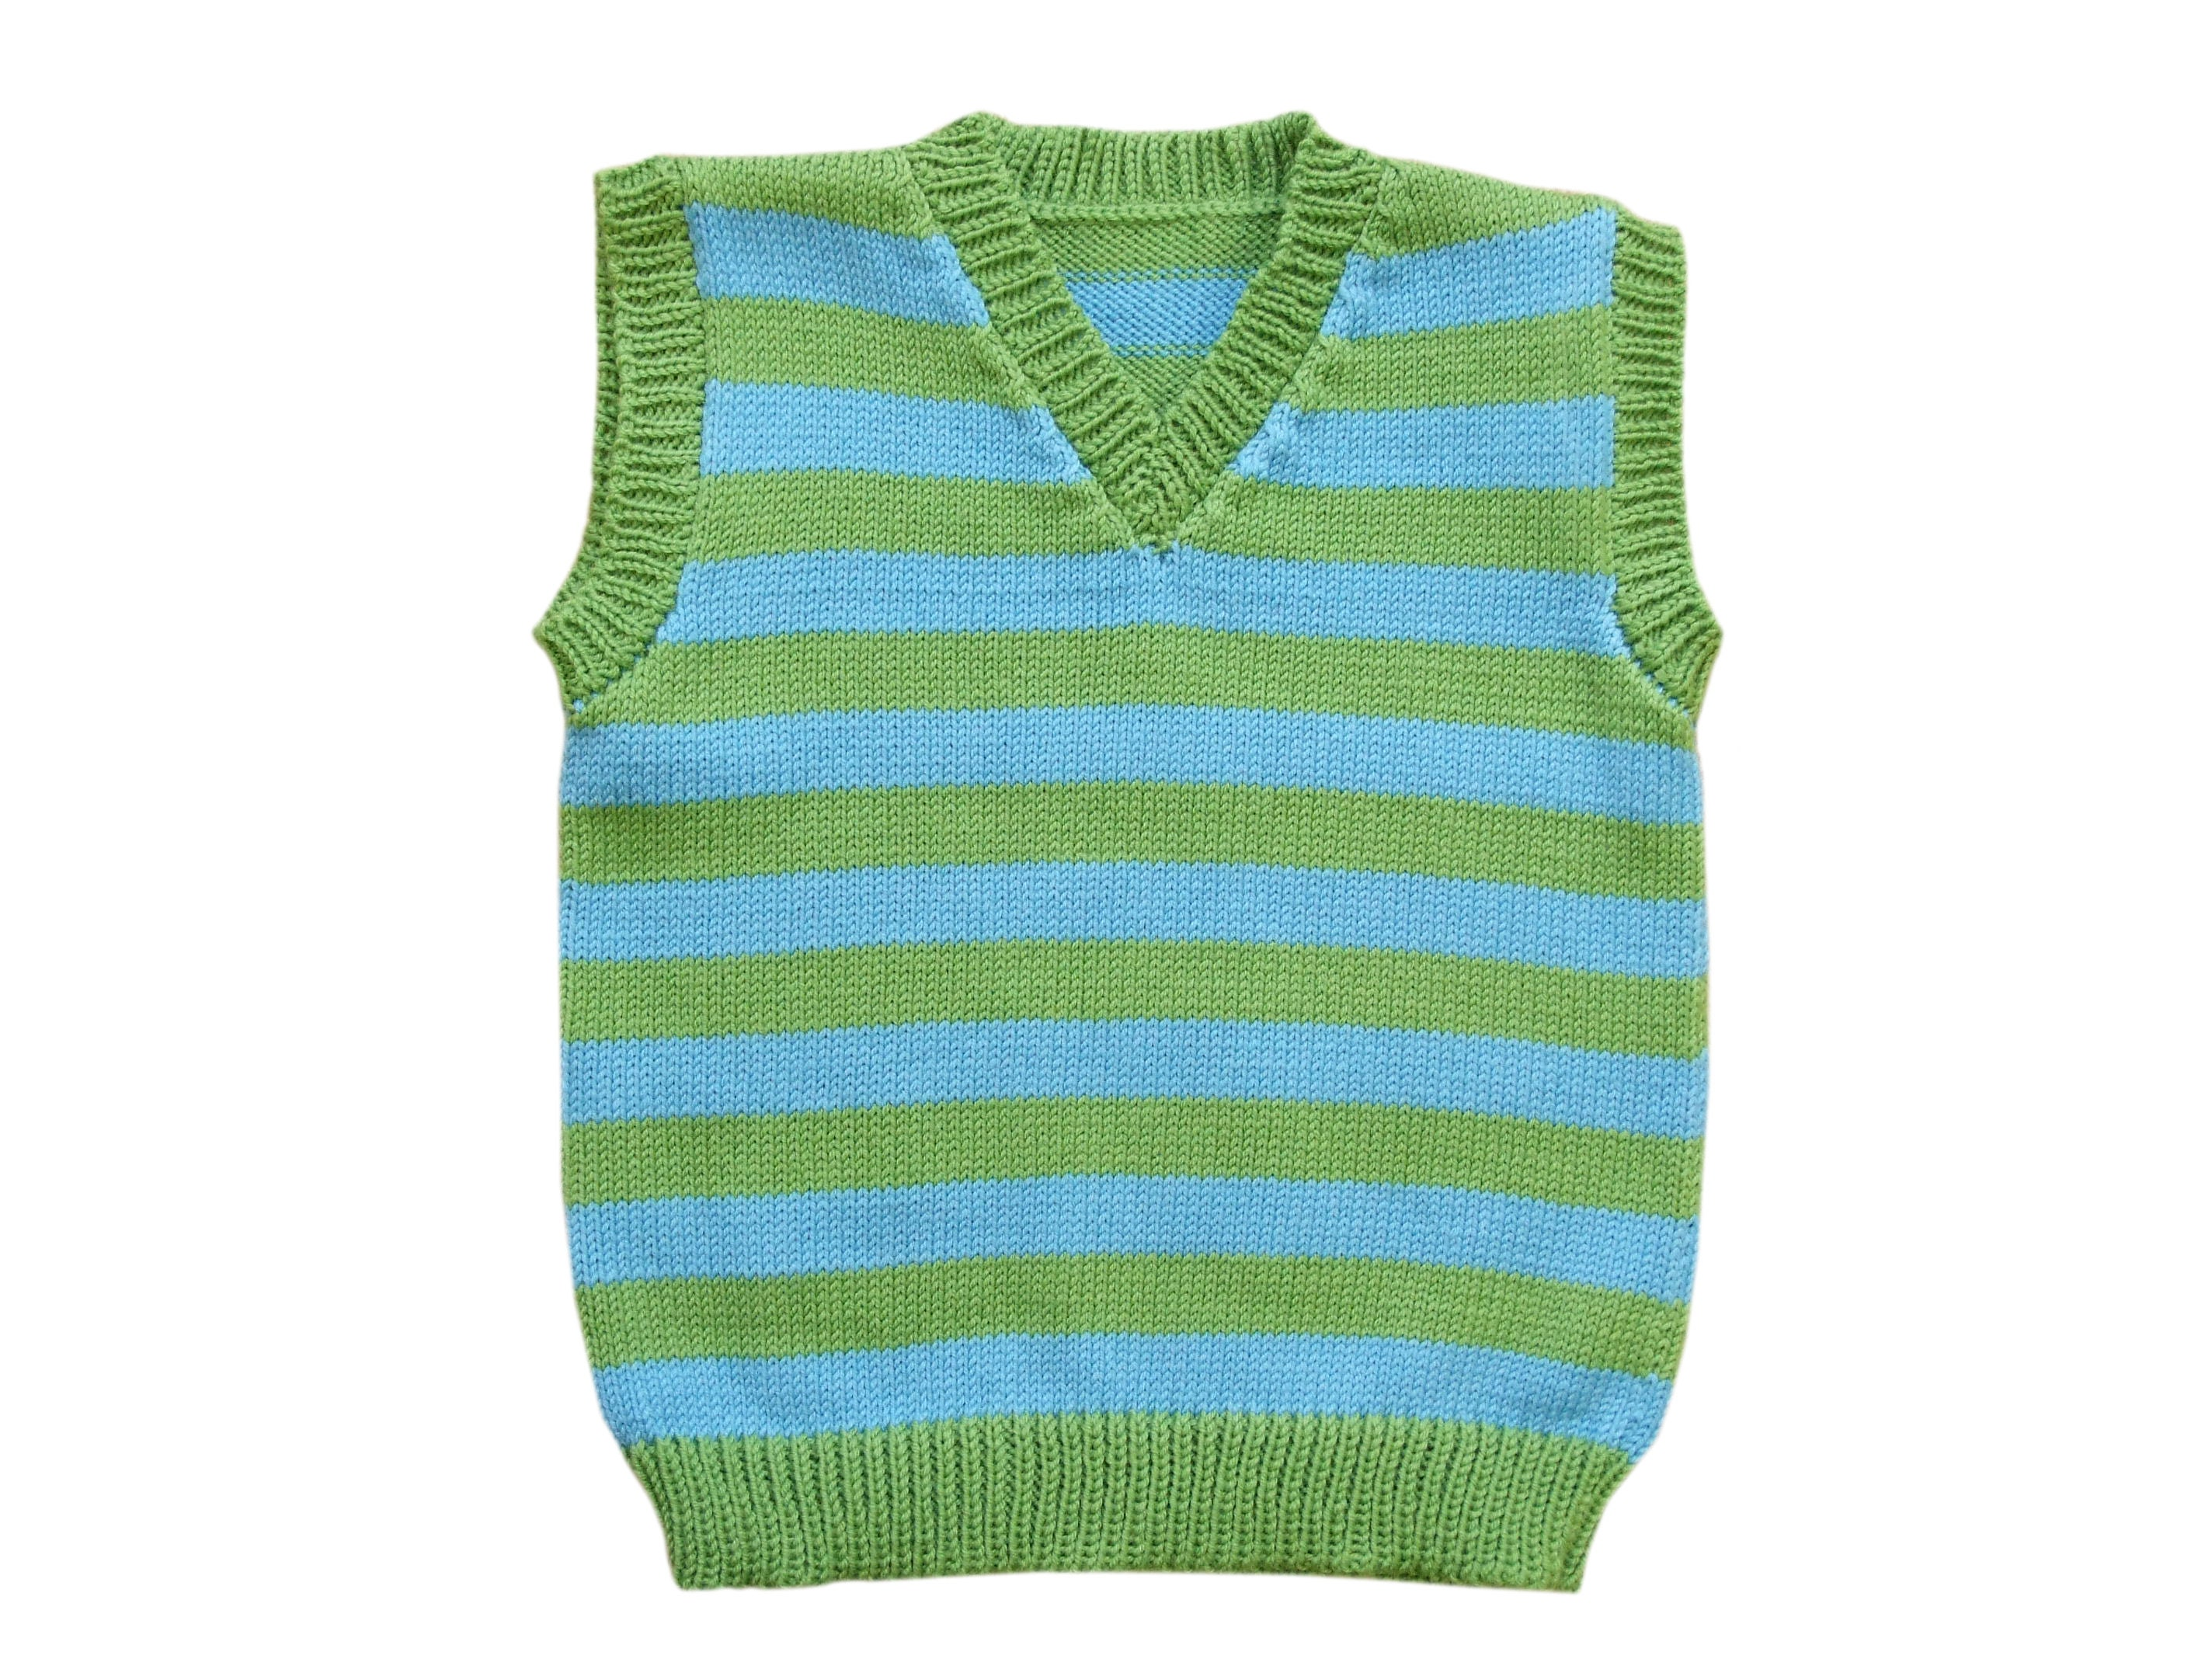 0b8ed1c73 SALE Vest 6-12 months 100% merino wool striped baby kid